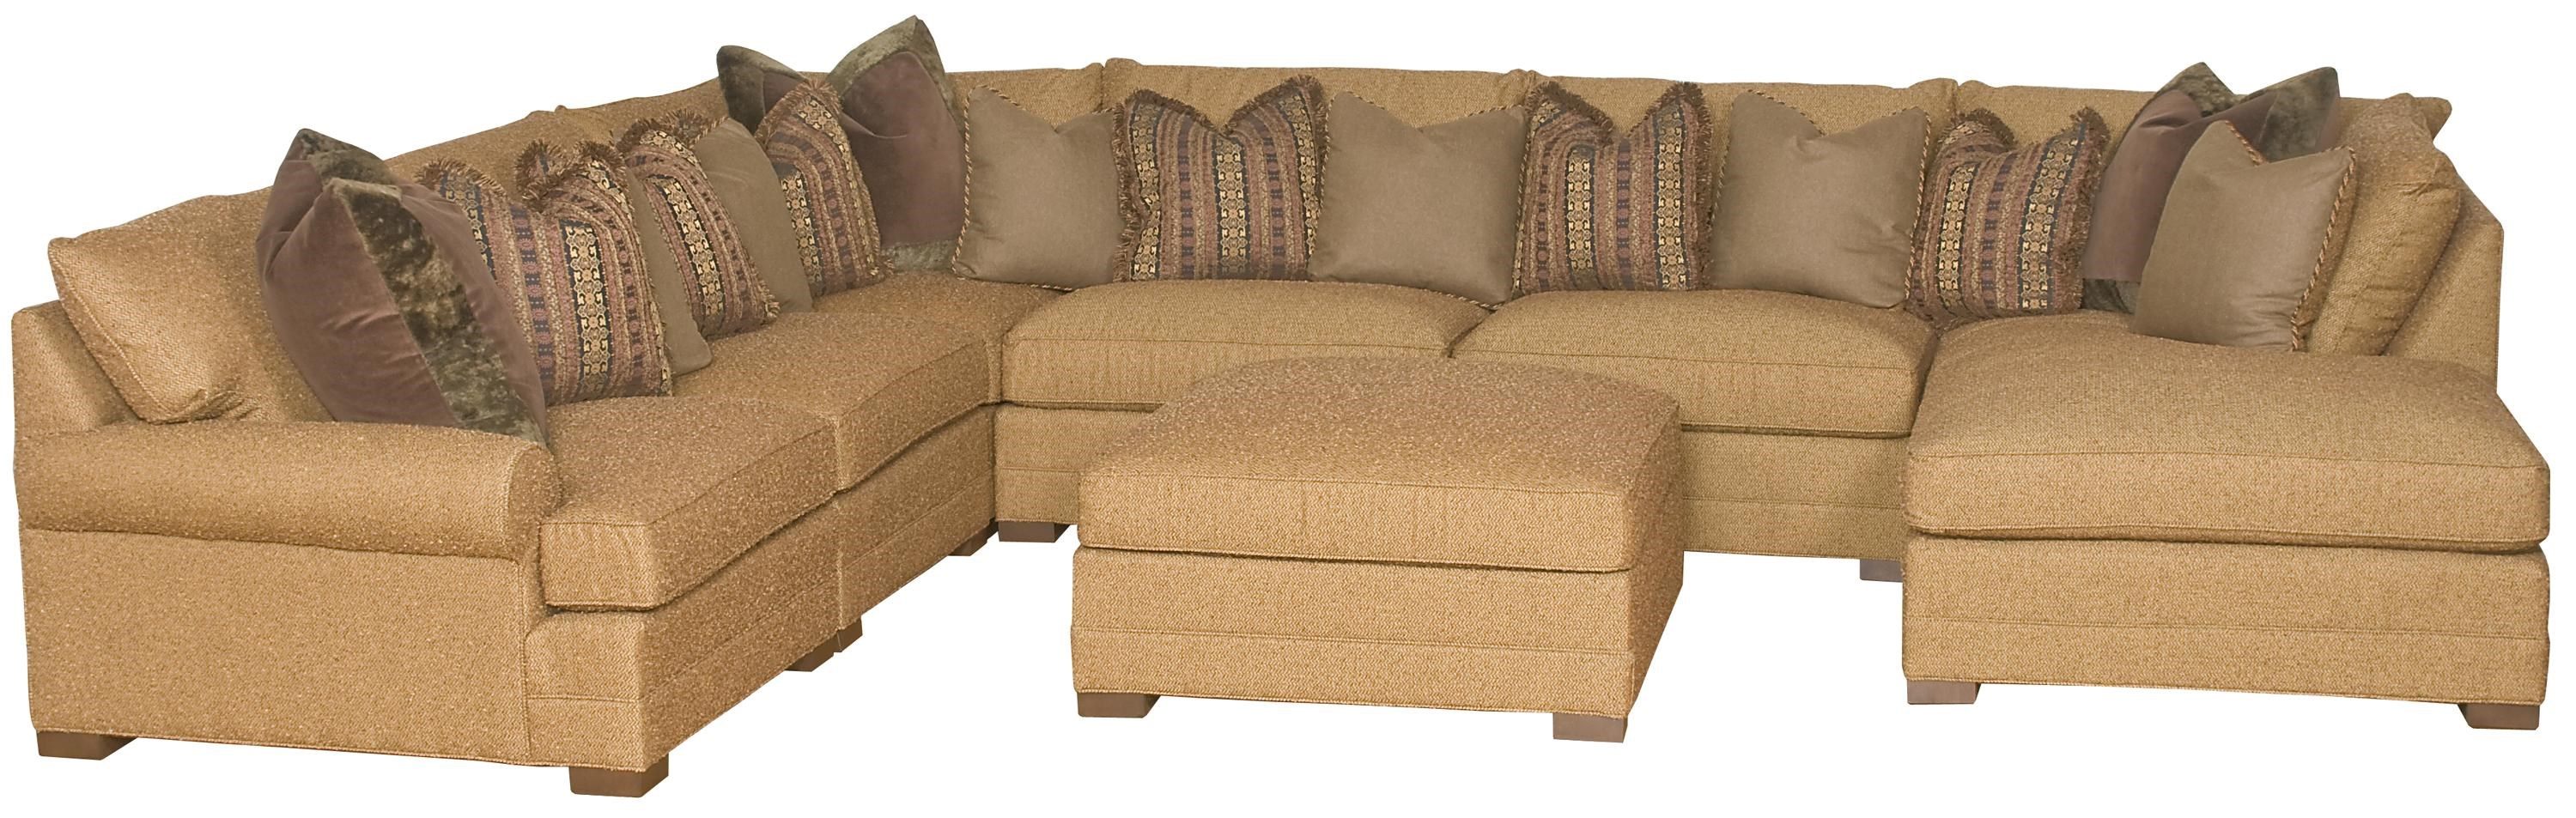 U Couch King Hickory Casbah Transitional U Shaped Sectional Sofa